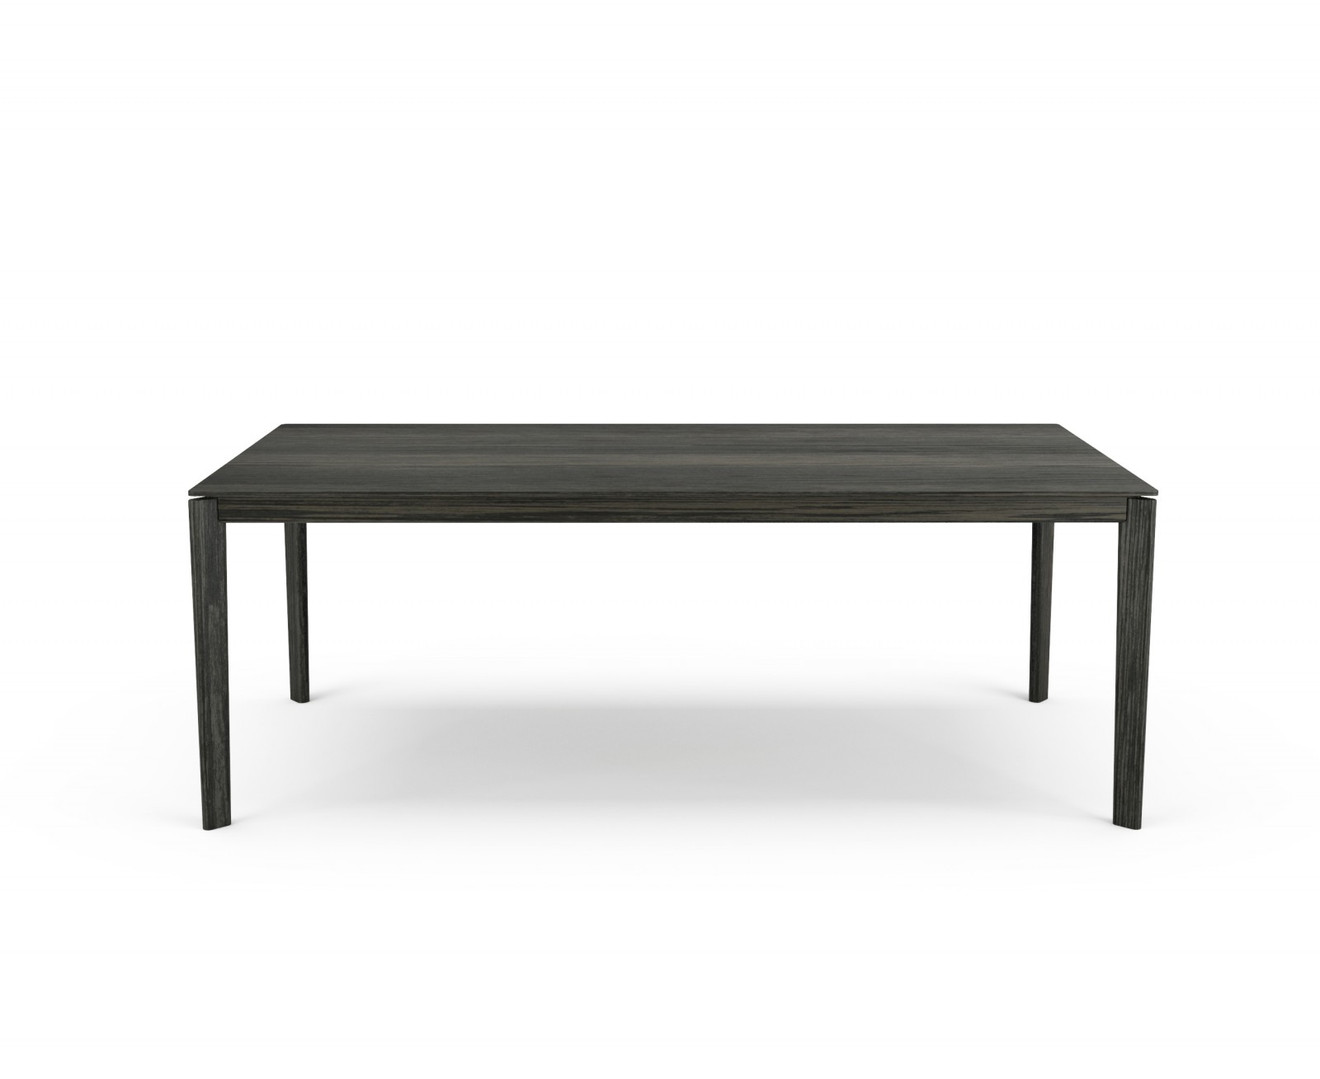 WOLFGANG 82'' TABLE